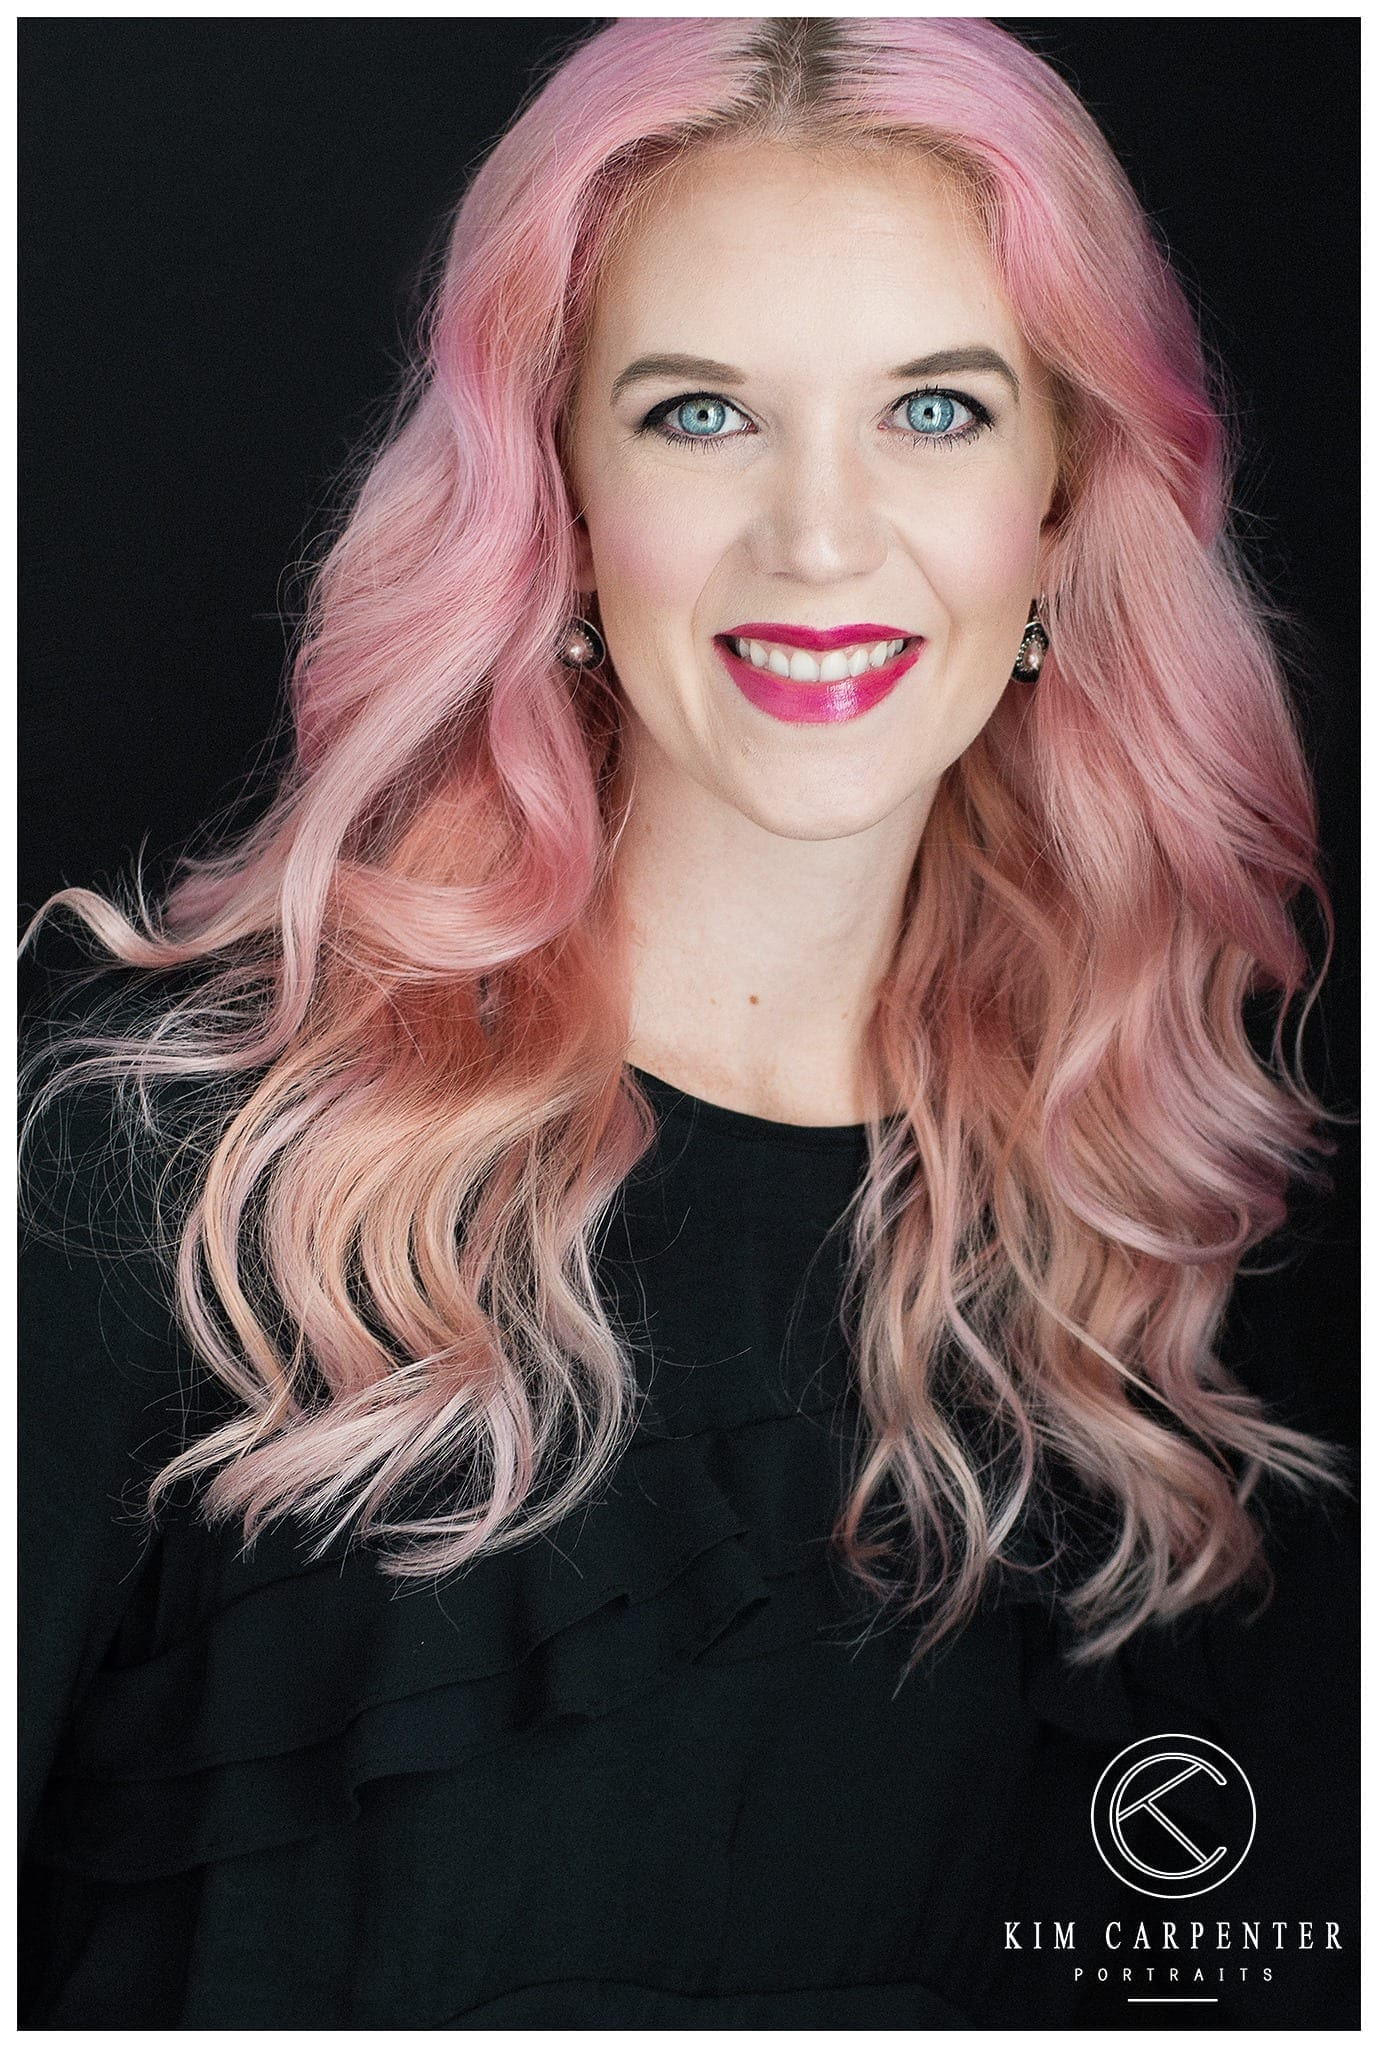 A woman with pastel pink hair and bright red lips.